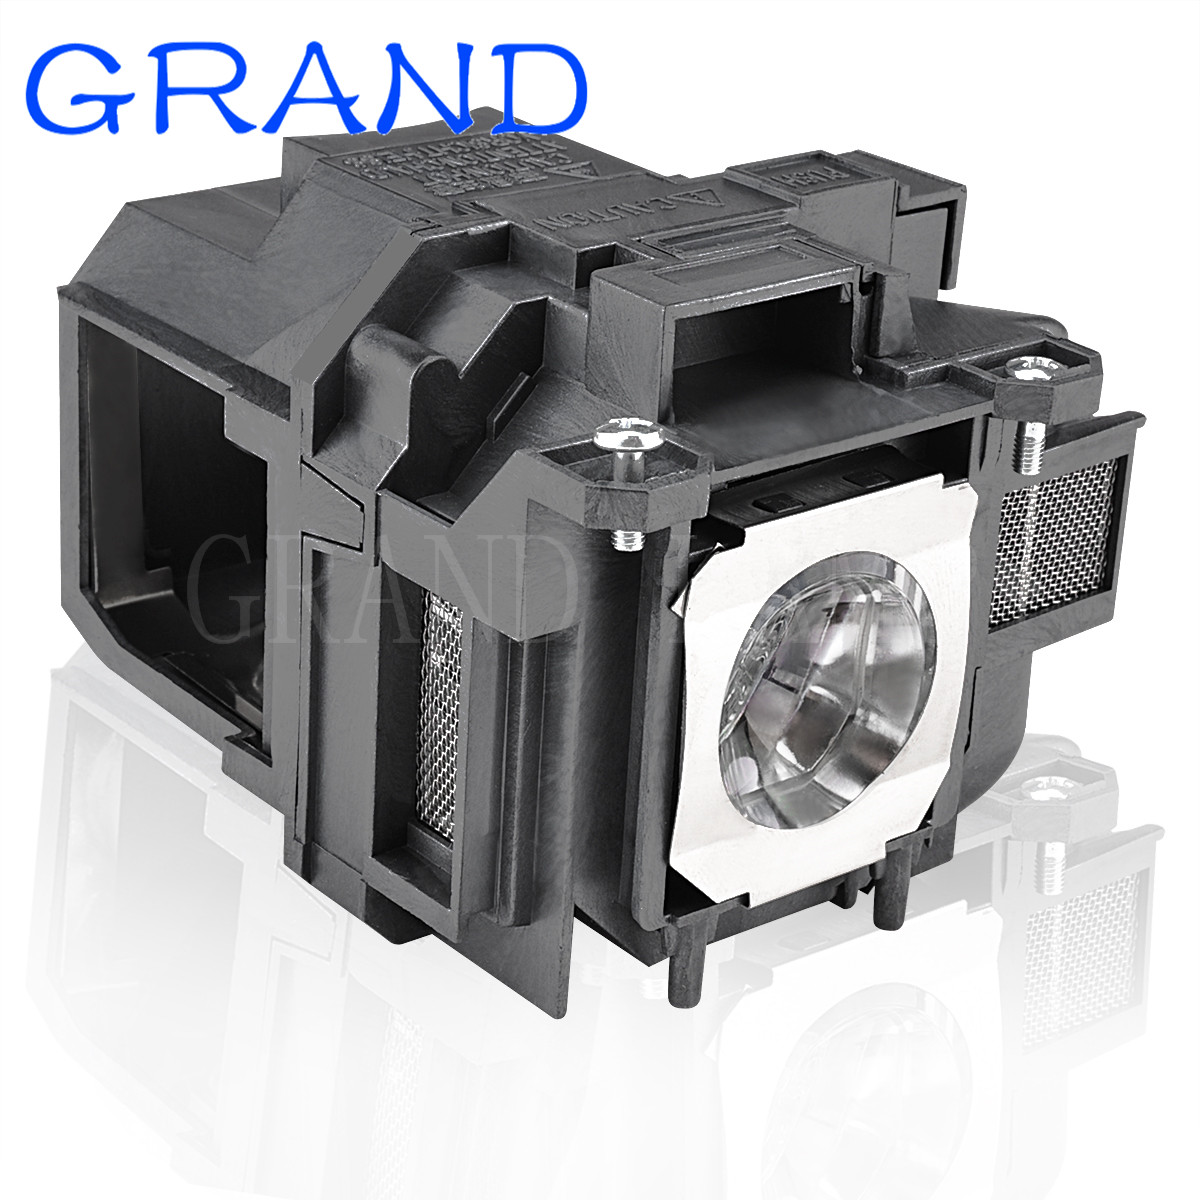 EB-X03 EB-X18 EB-X20 EB-X24 EB-X25 EH-TW490 EH-TW5200 EH-TW570 EX3220 EX5220 Projector Lamp For V13H010L78 ELPL78 For Epson